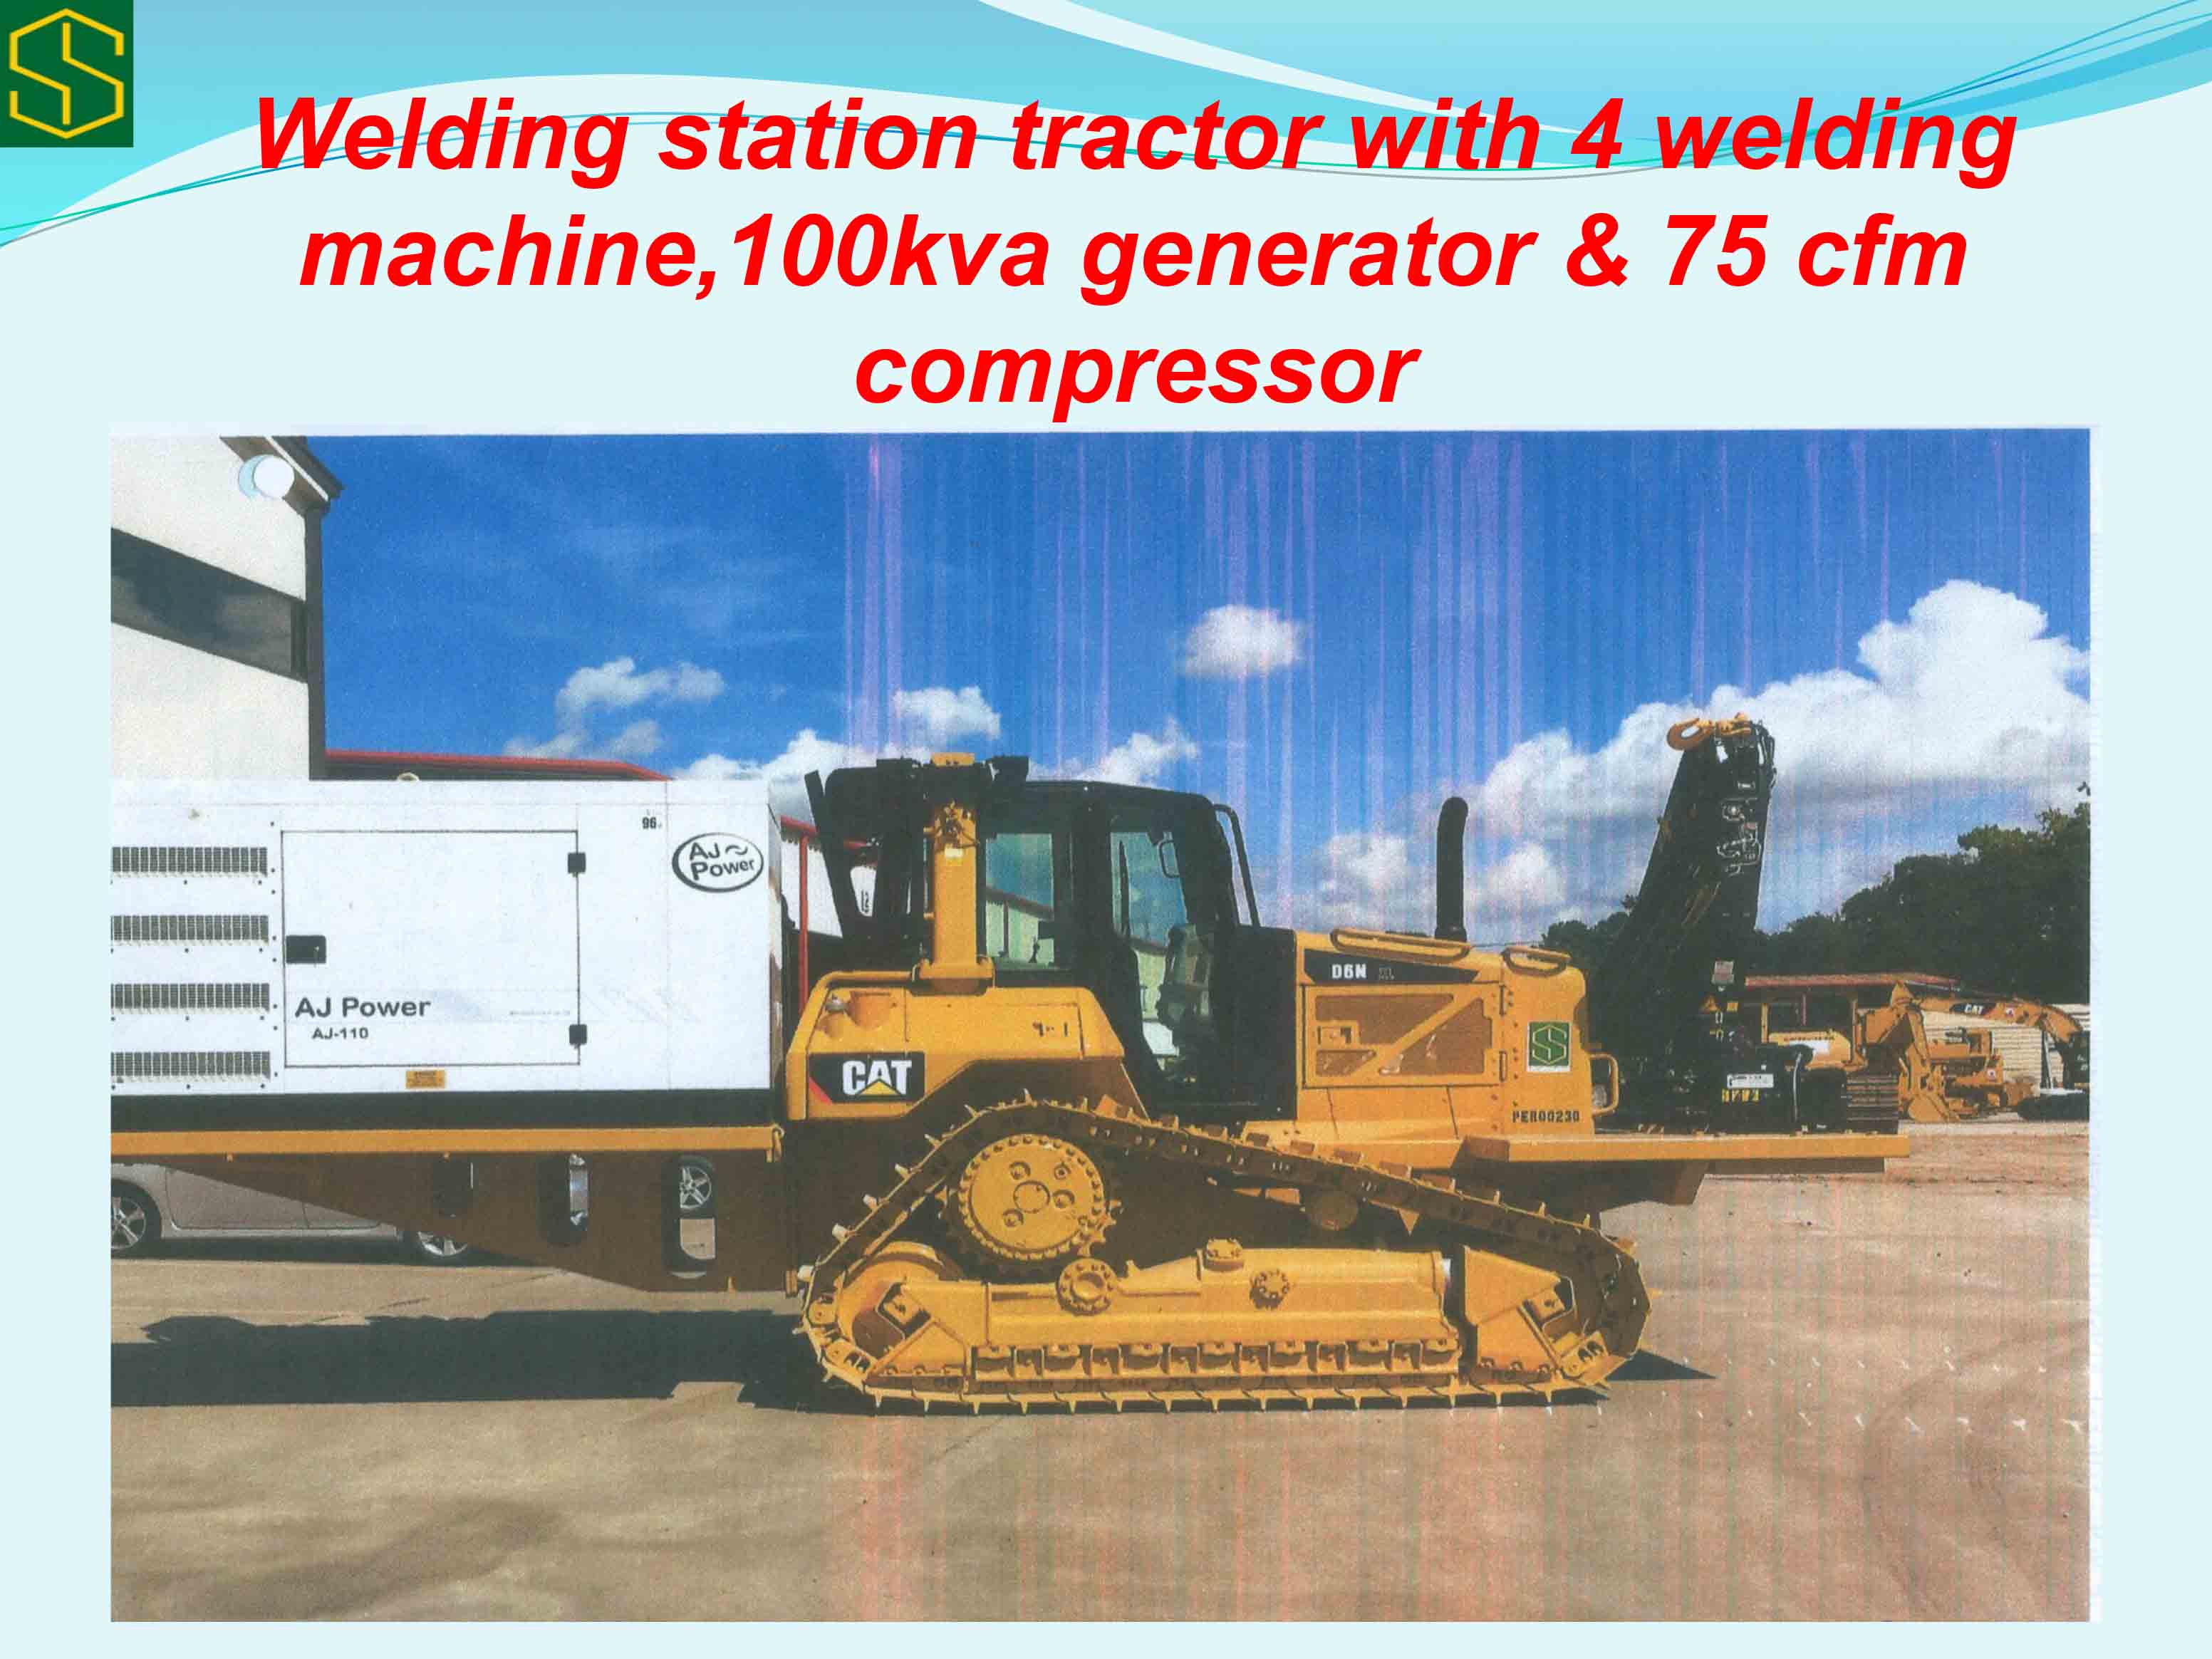 Slot Engineering welding tractor machine - 'Our Logistics Base Was Built To Tackle Contractors' Accommodation Problems,' Says Ojukwu